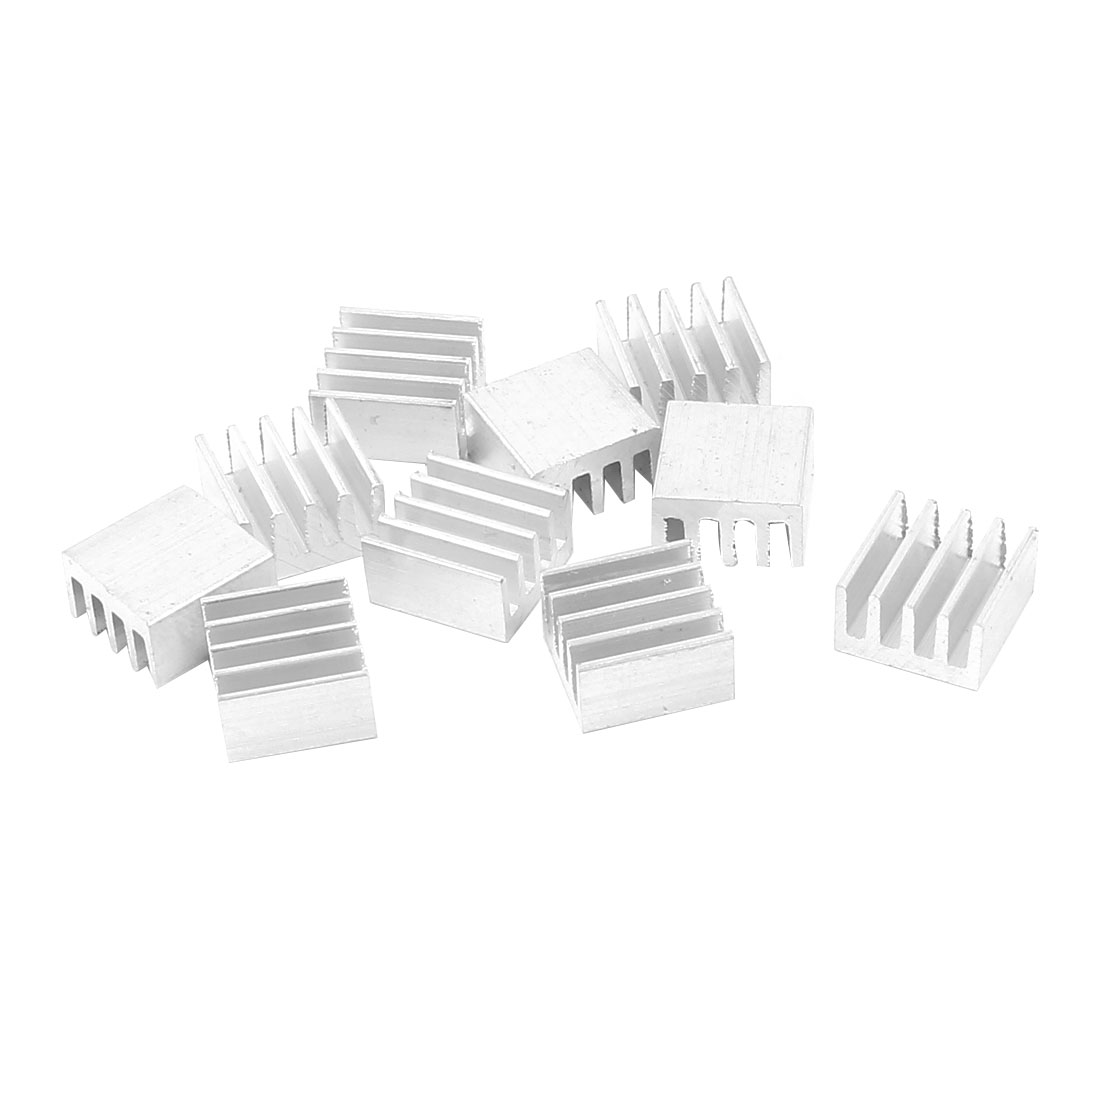 10 Pcs Silver Tone Aluminum Radiator Heat Sink Heatsink 9x5x9mm